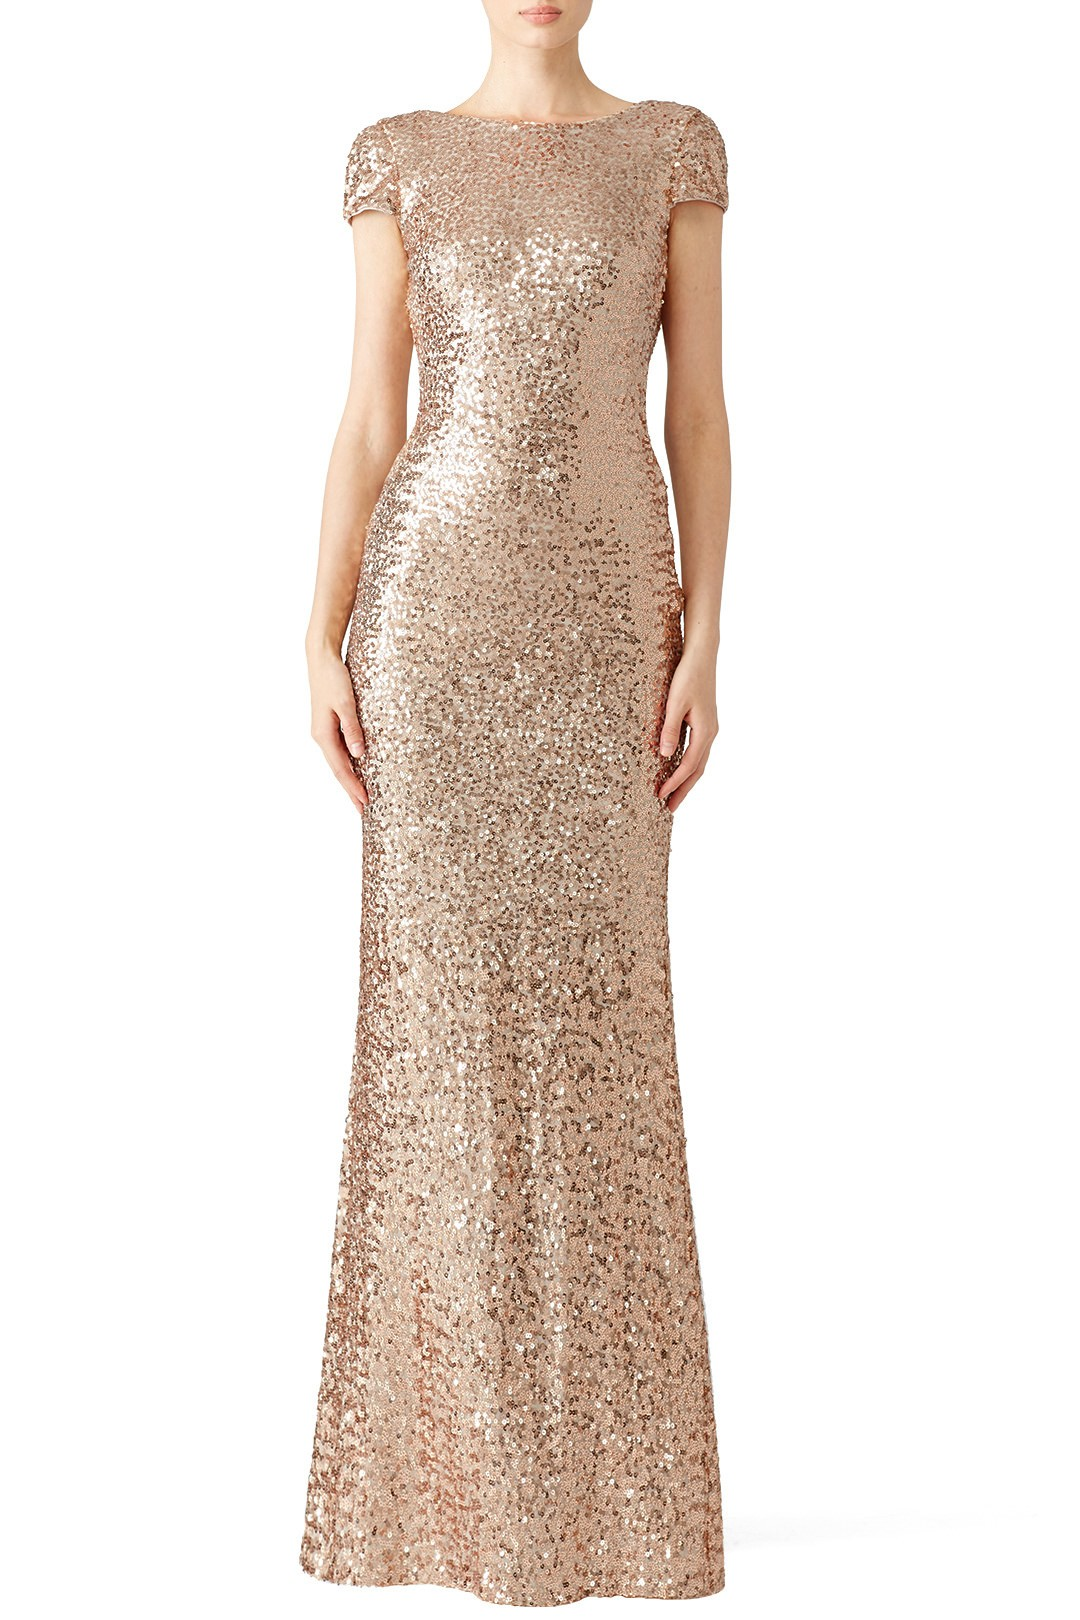 Wedding Beaded Dresses beaded metallic and sequined bridesmaid dresses badgley mischka